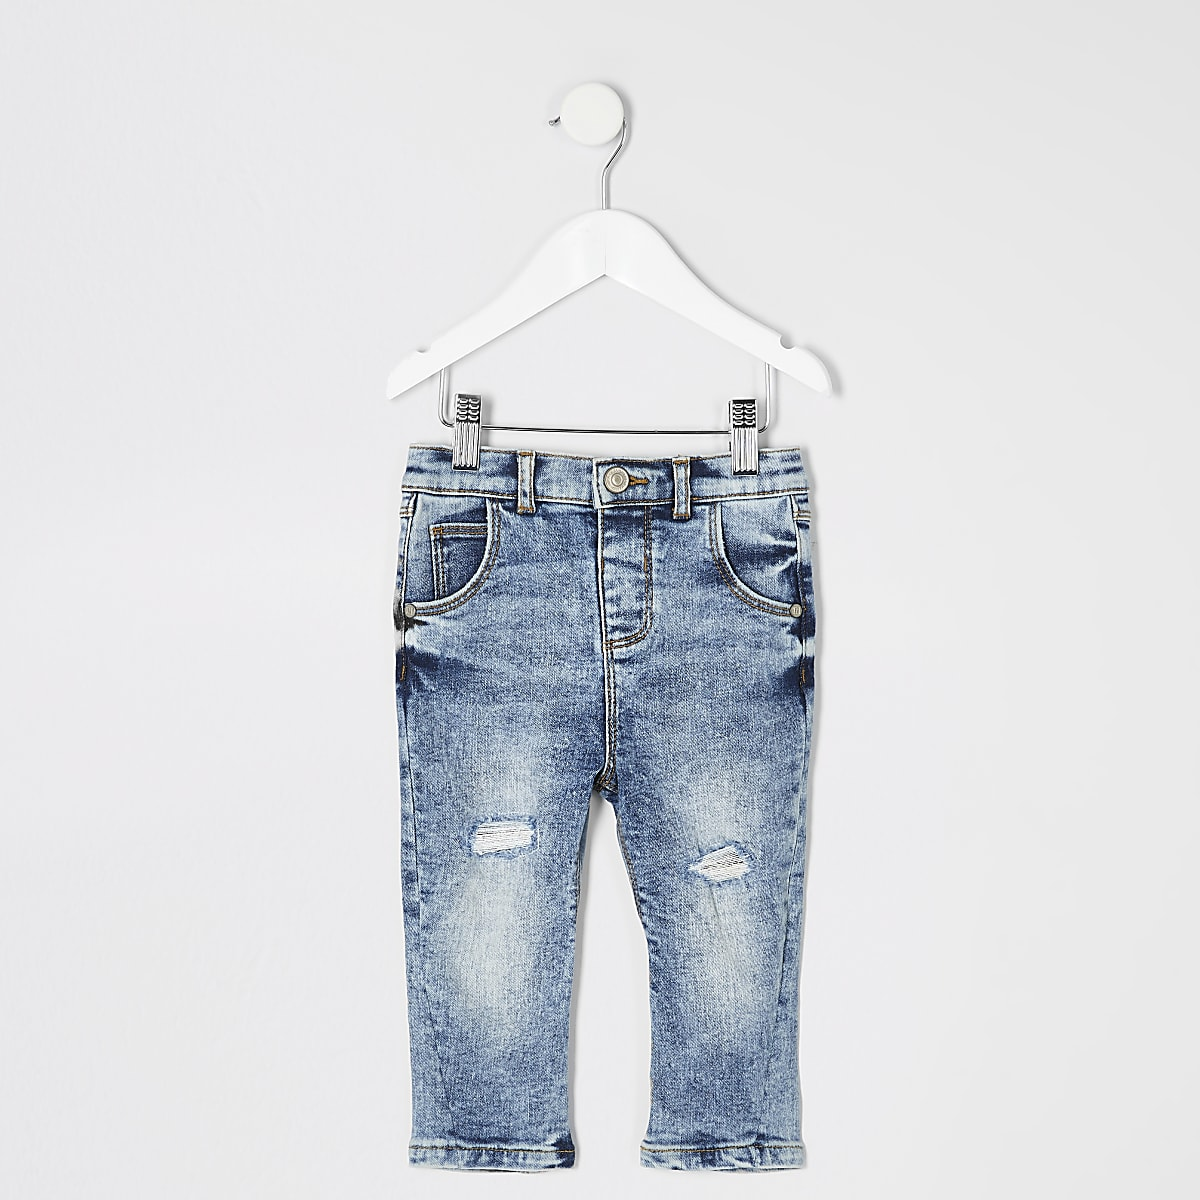 Mini - Blauwe acid wash ripped jeans voor jongens